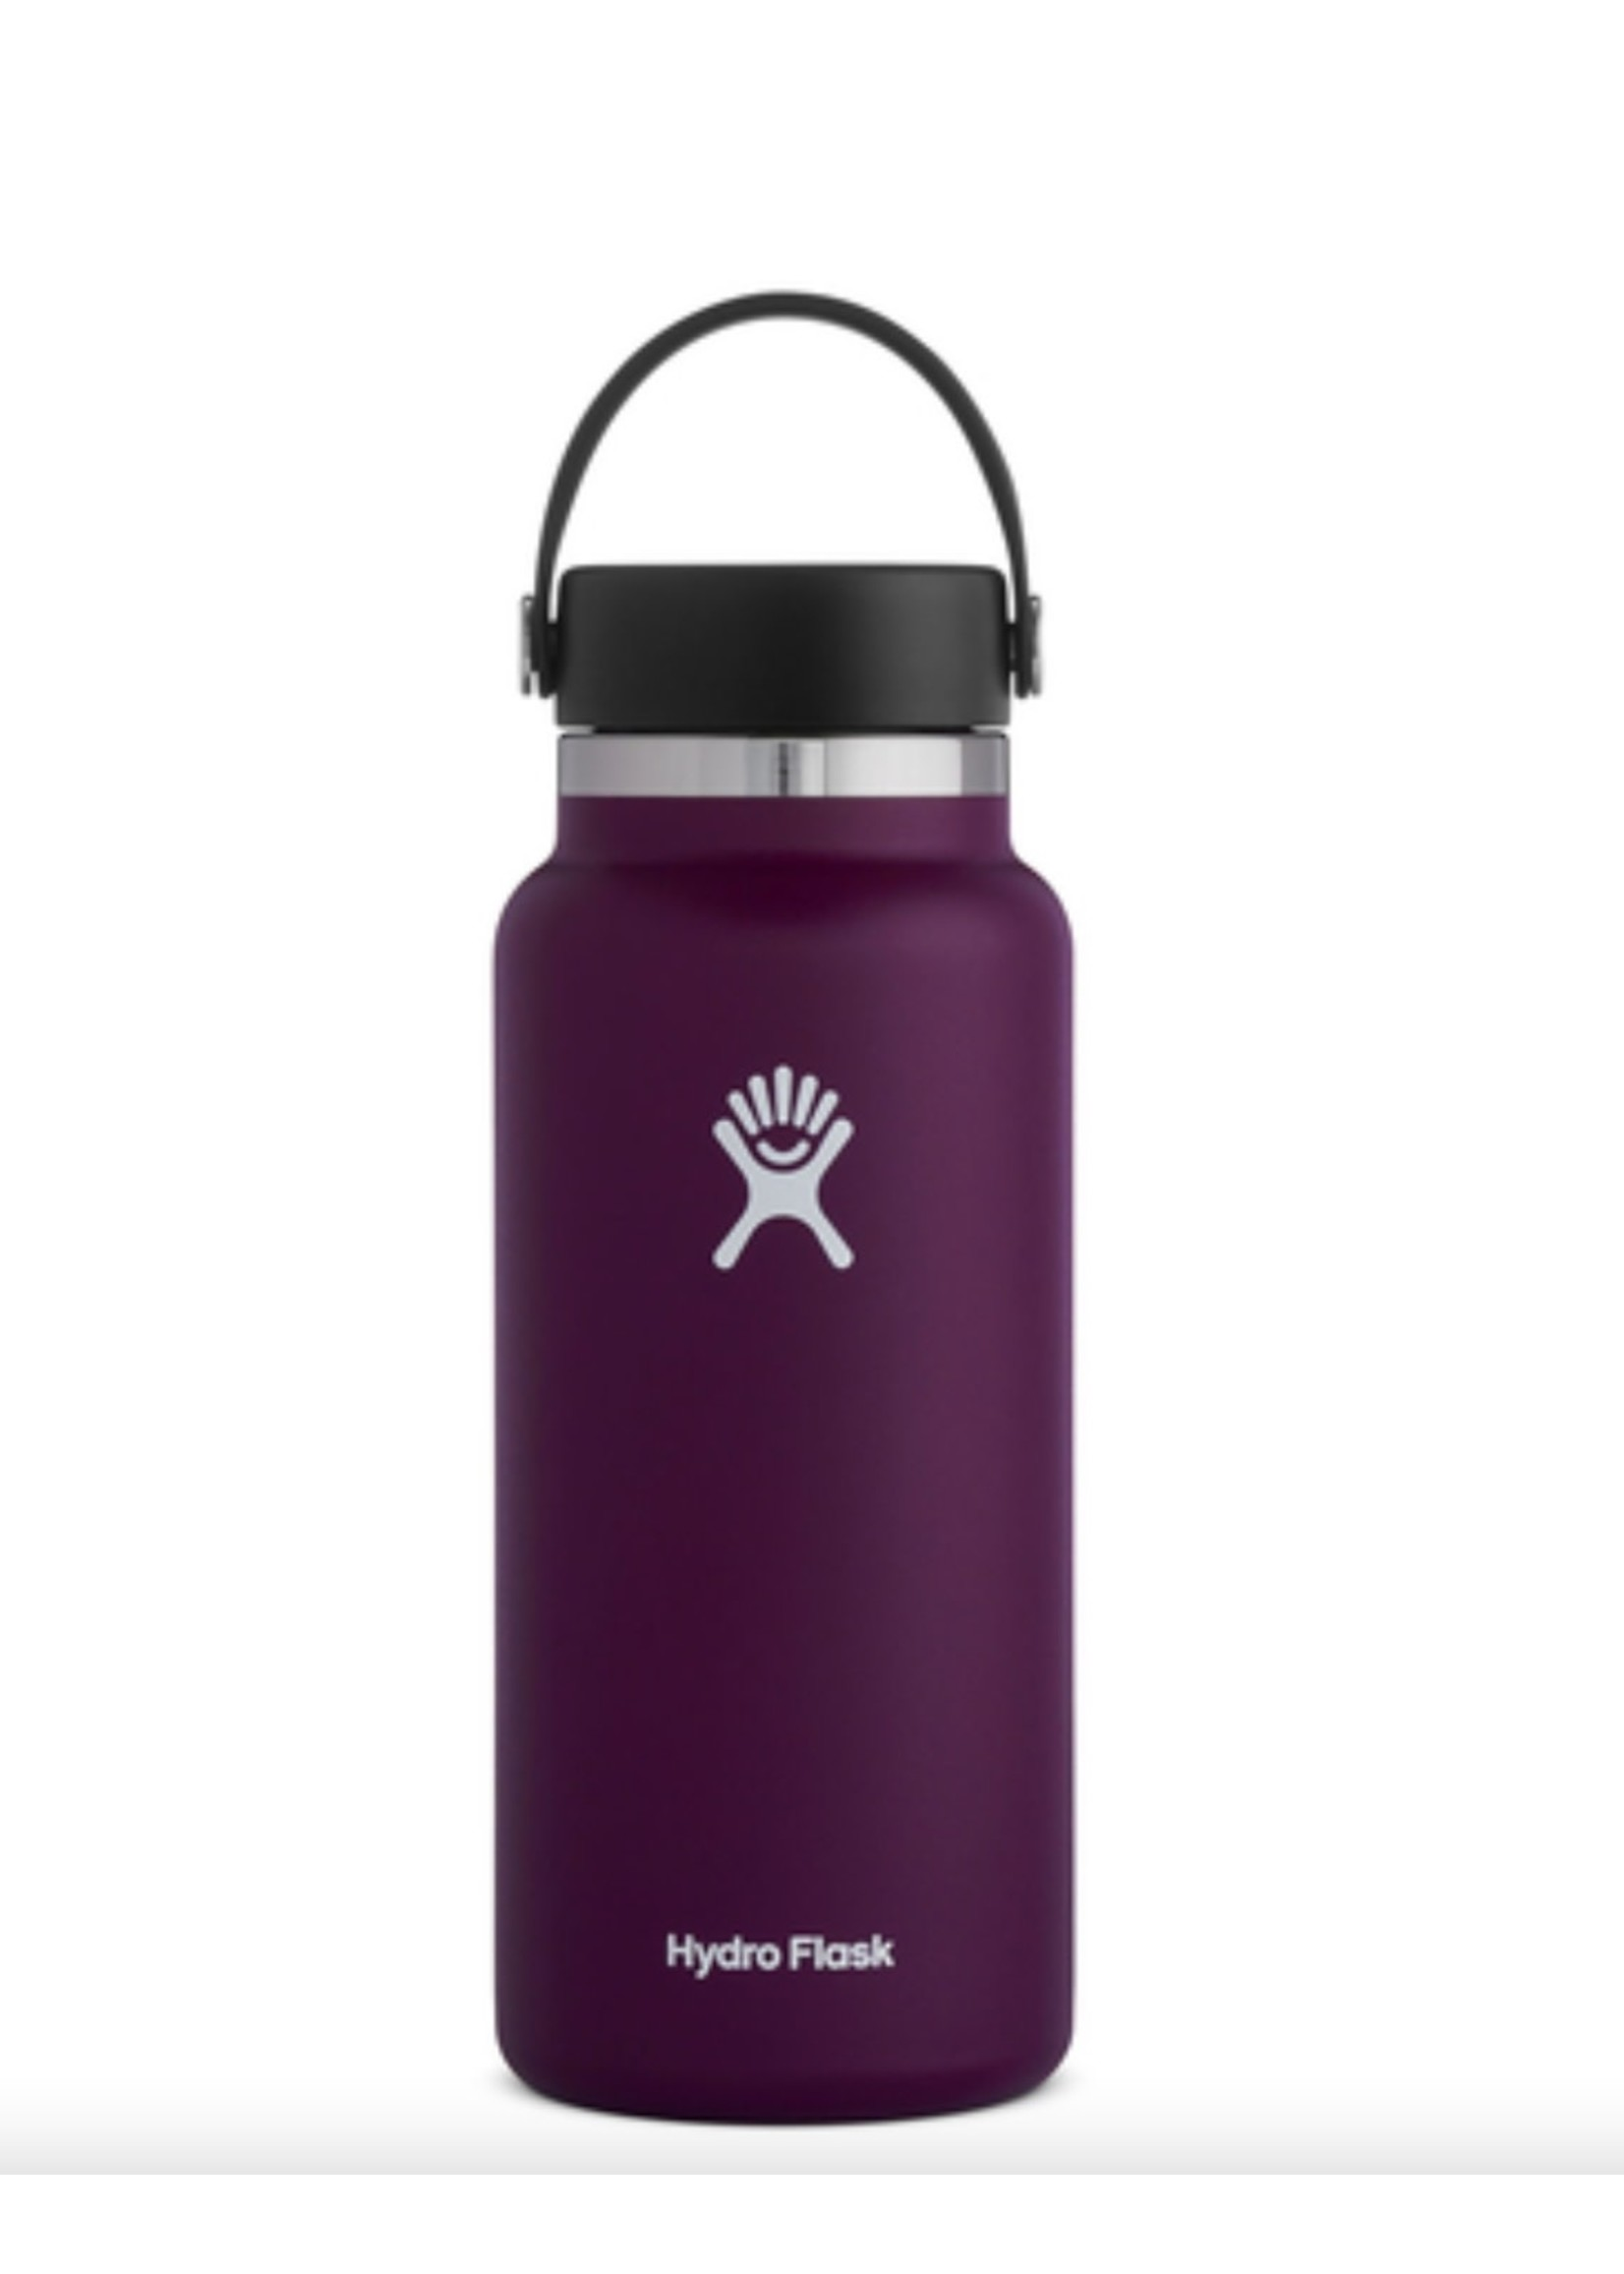 Hydro Flask 32 oz Wide Mouth 2.0  Flex Cap Insulated Stainless Steel Bottle in Eggplant